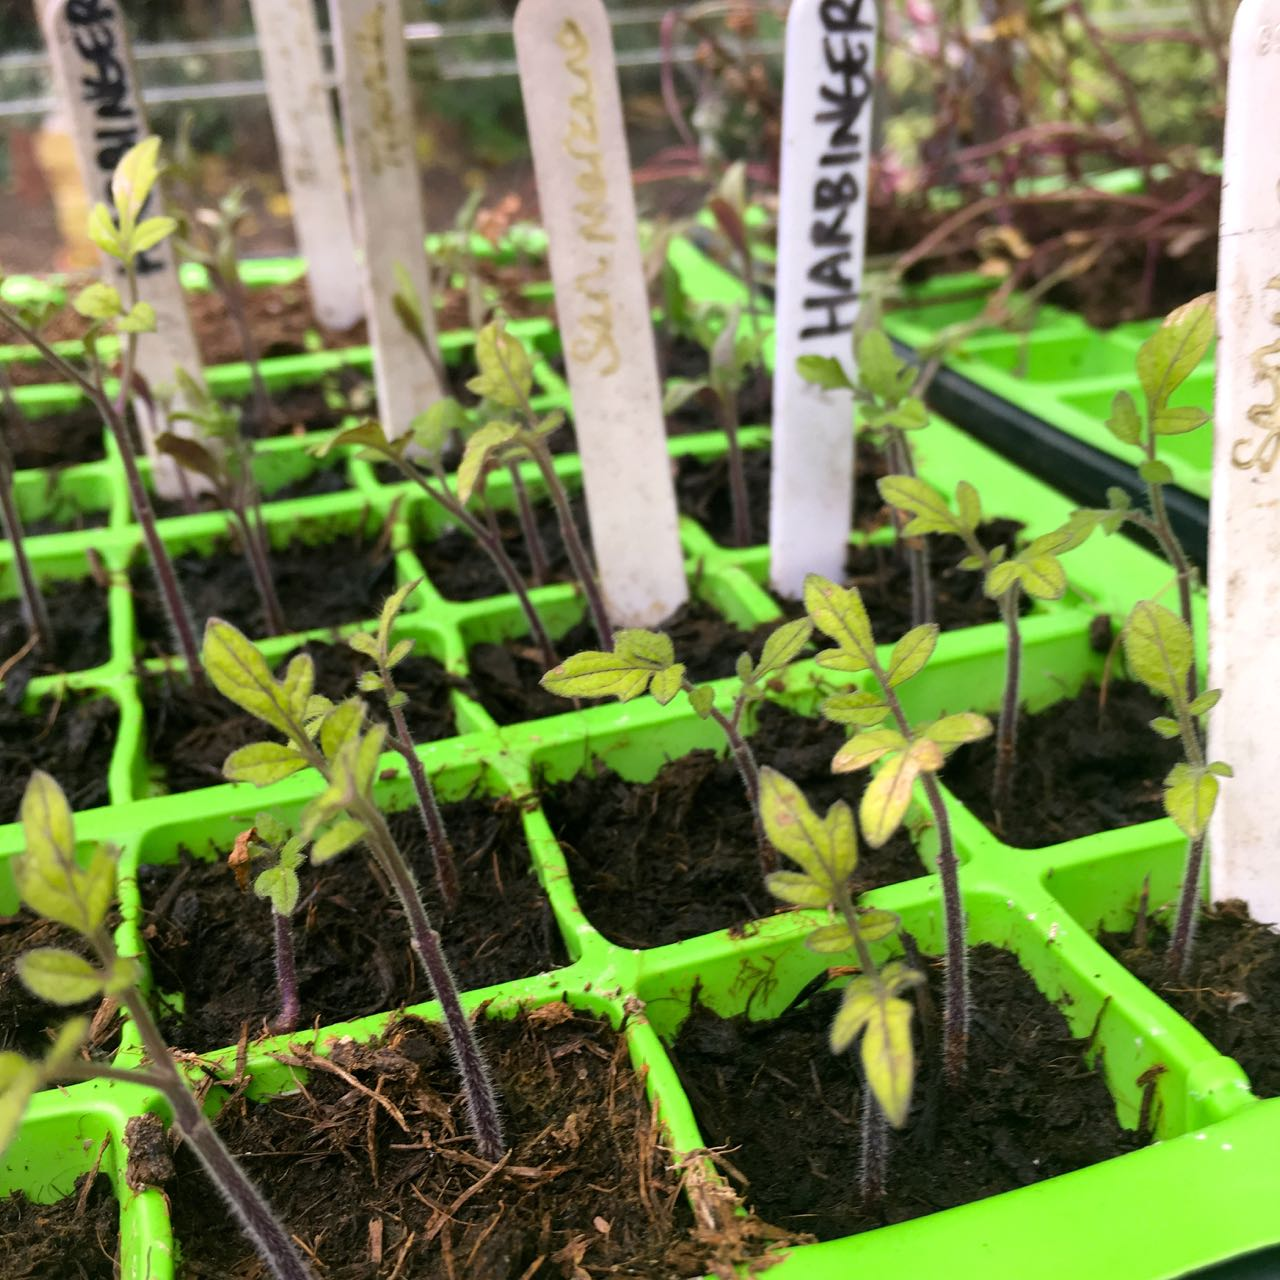 the tomato seedlings appear to be protesting